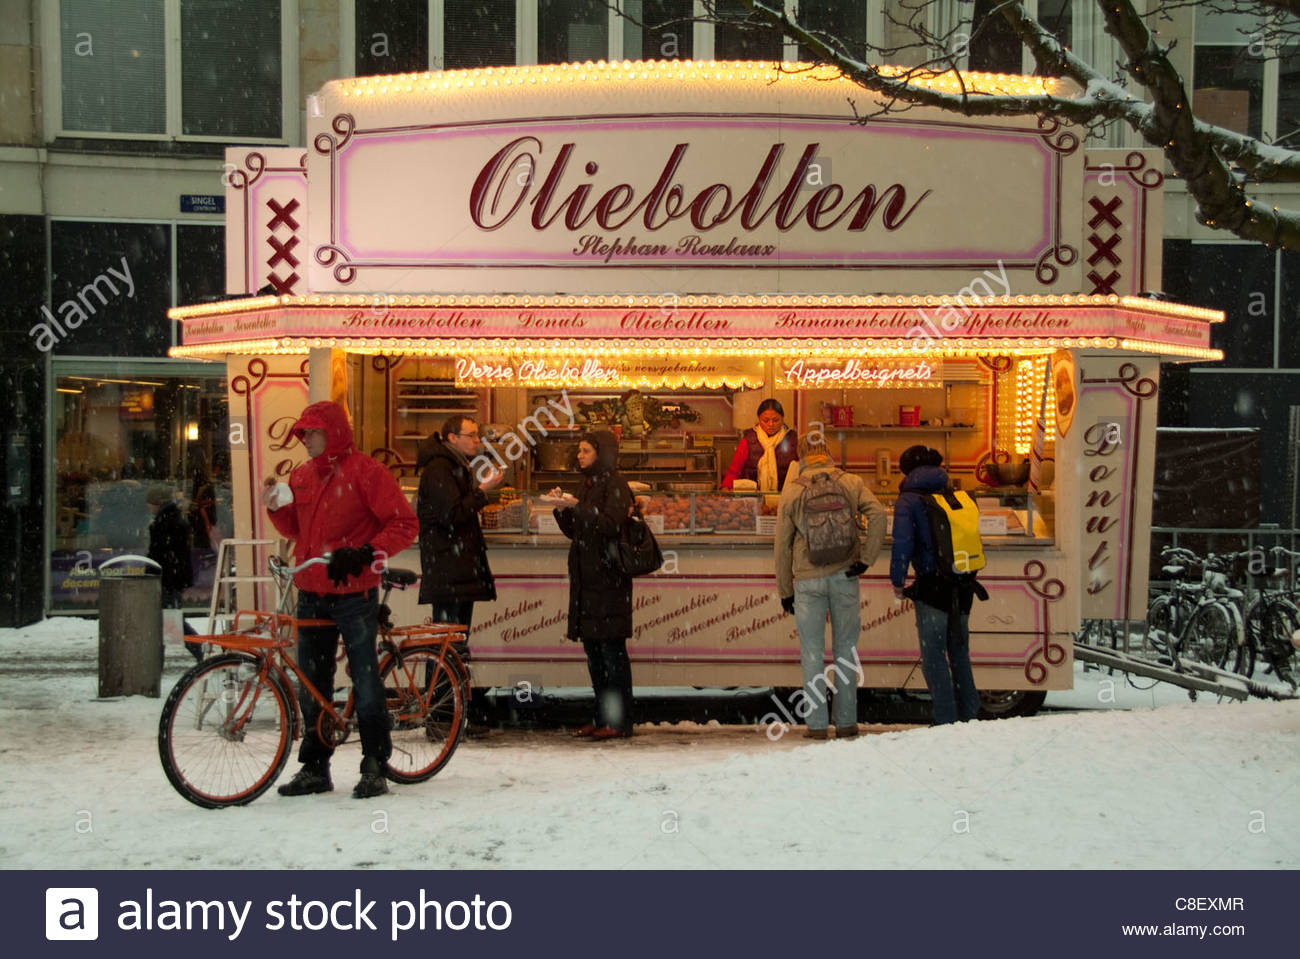 A waffle stand in snow at Christmastime. - Stock Image